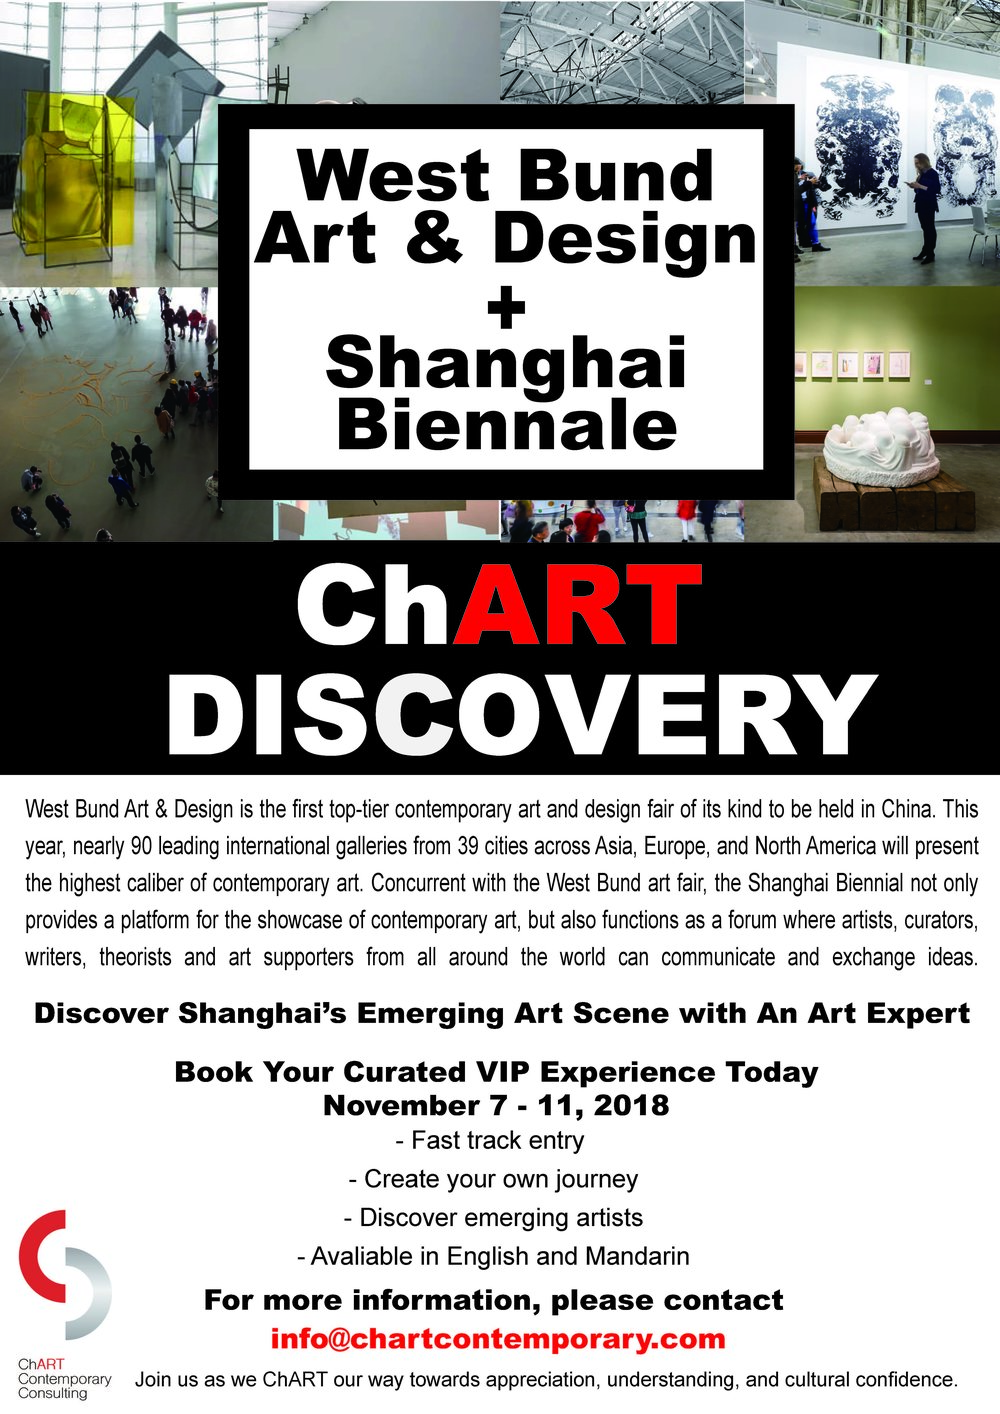 Shanghai West Bund and Biennale Discovery Tour 2018 Flyer (1).jpg